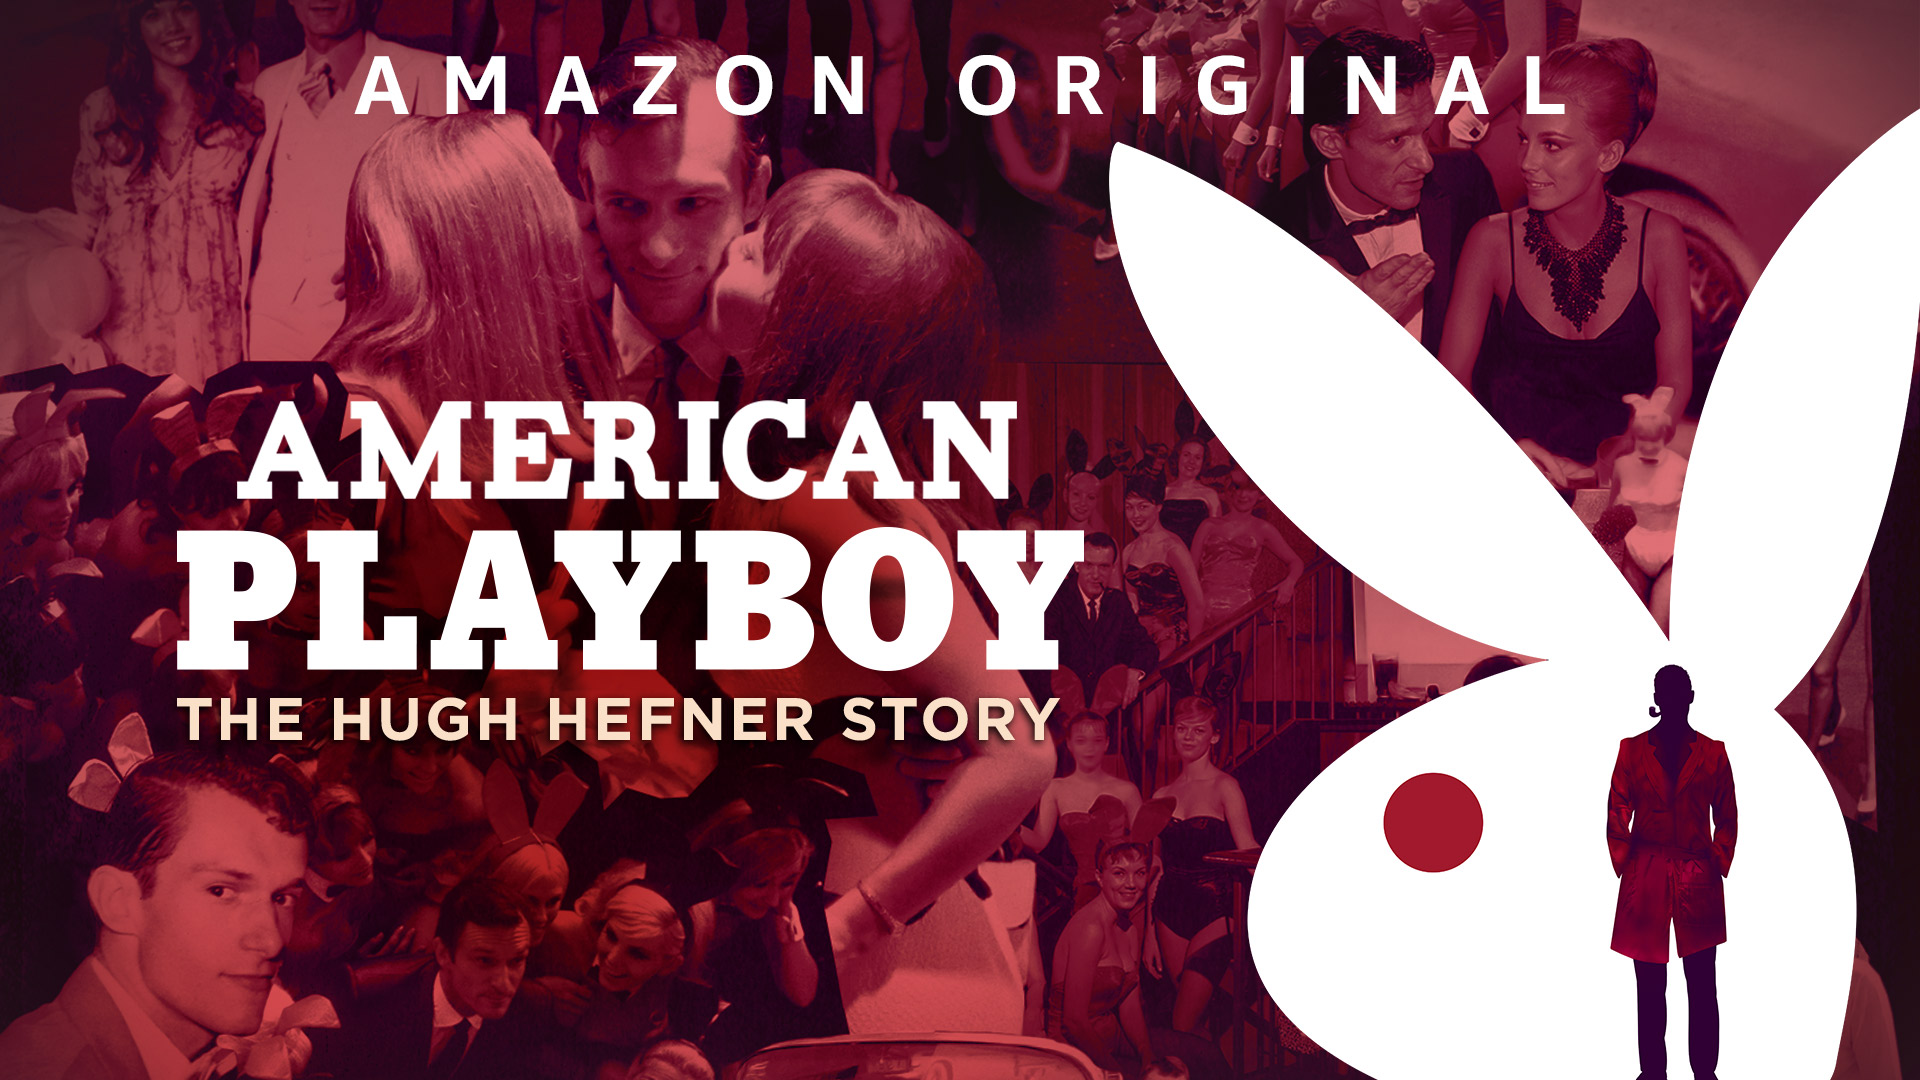 American Playboy: The Hugh Hefner Story